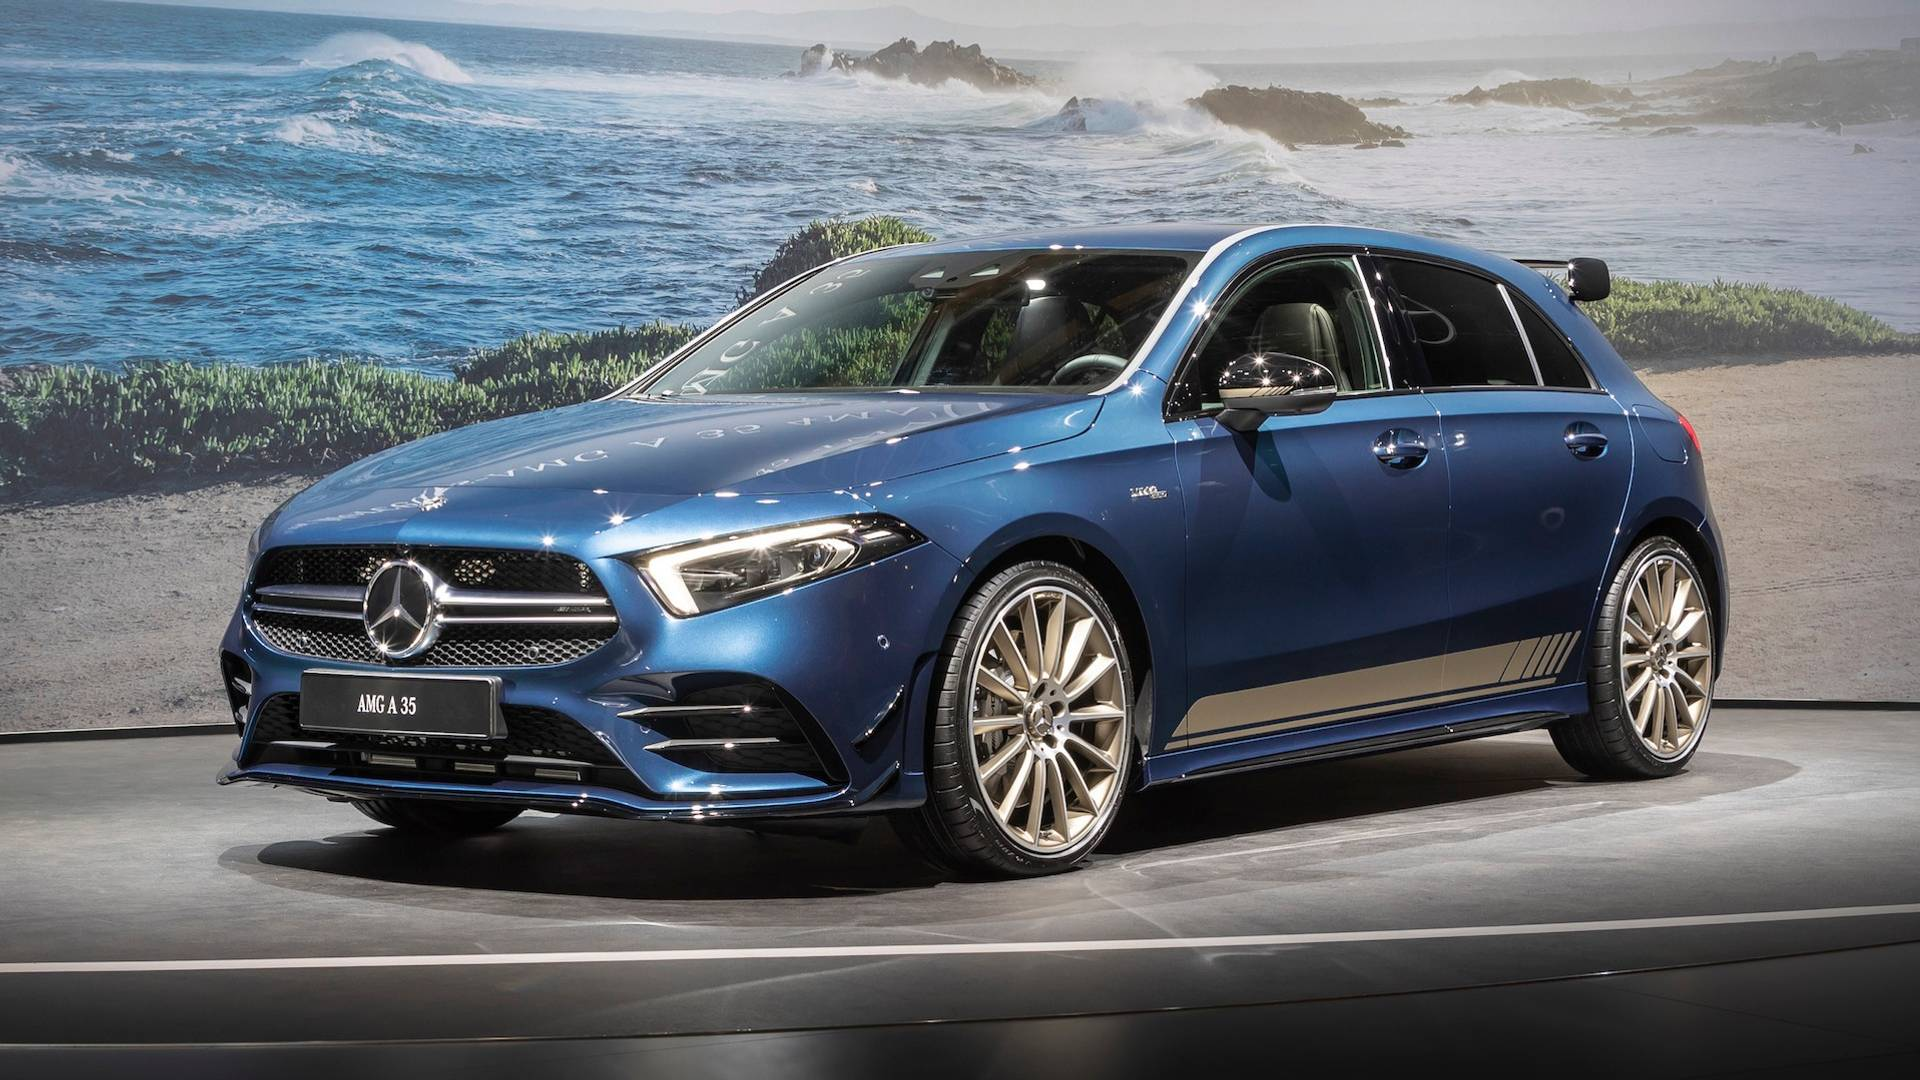 2019 Mercedes-AMG A35 Debuts In Paris, Shows Its Sporty Side